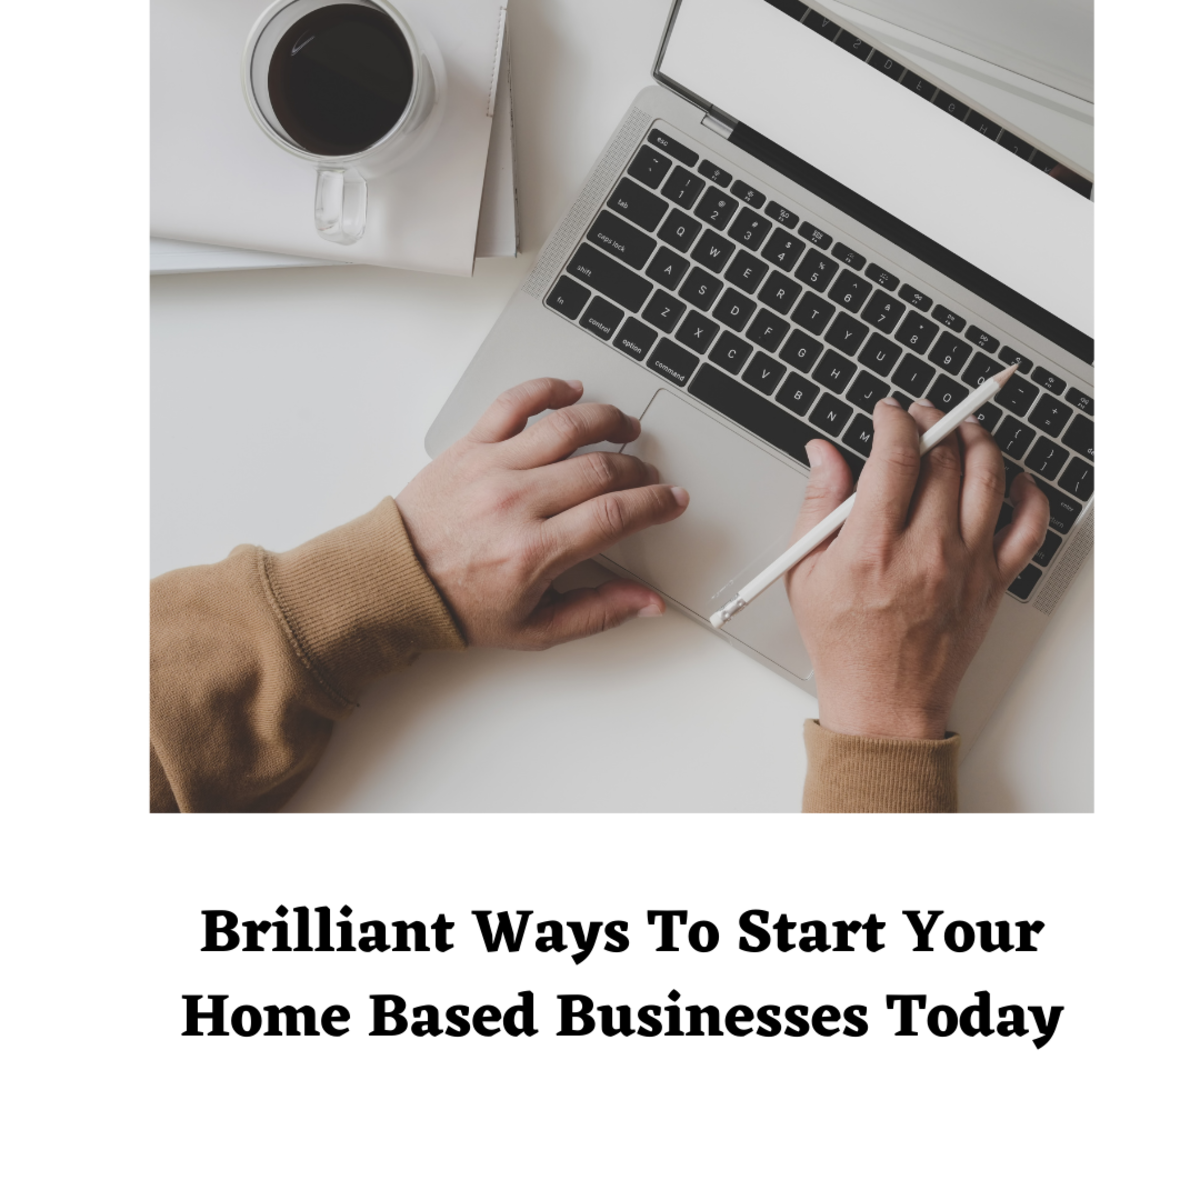 Brilliant Ways To Start Your Home Based Businesses Today